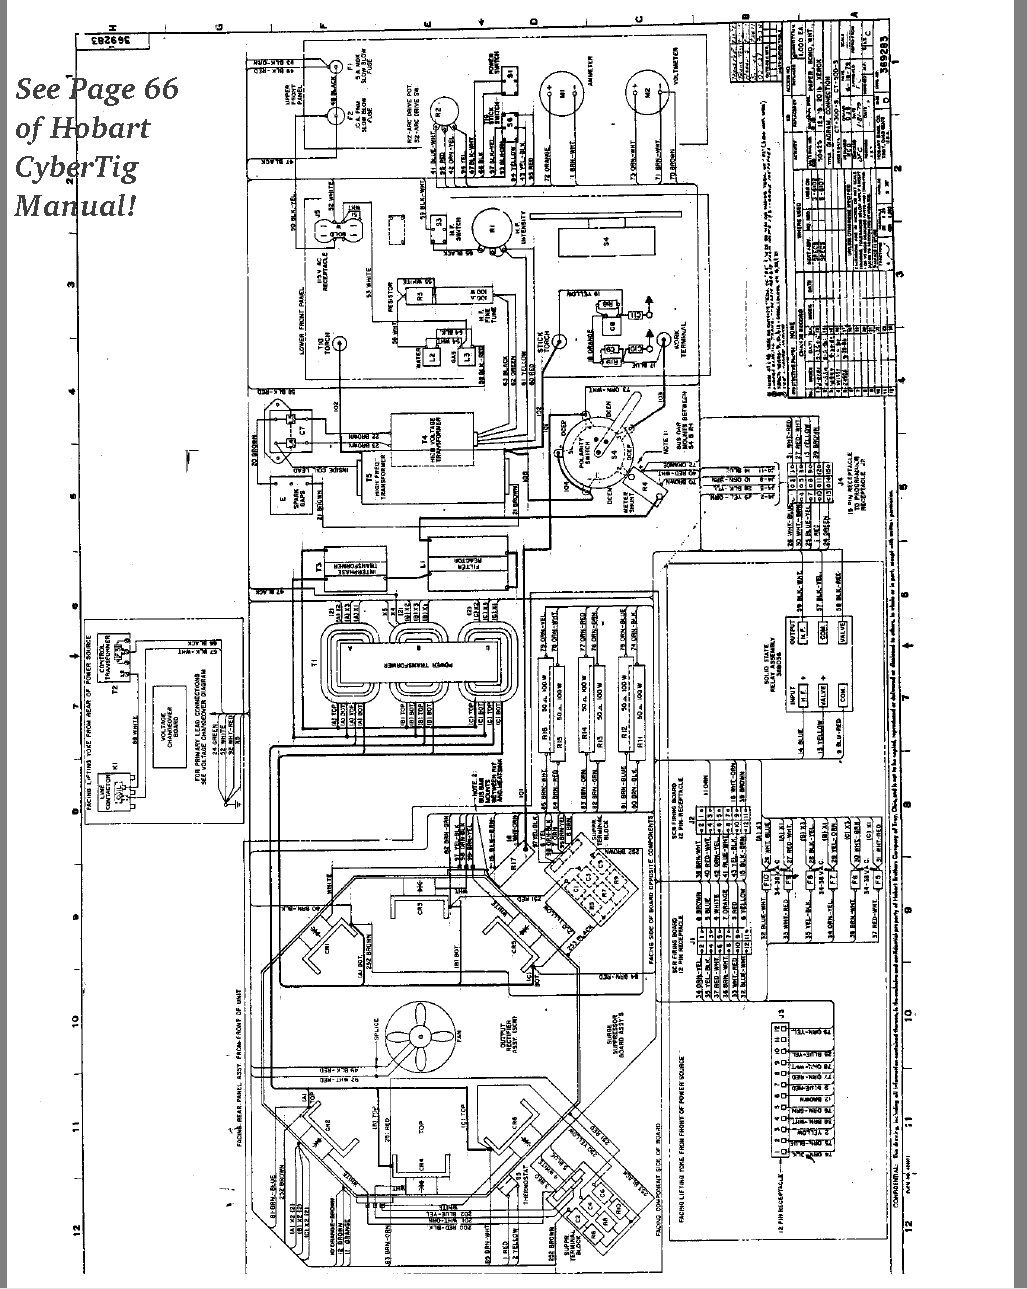 dc welder wiring diagram free download schematic wrg 3209 tig welding schematic diagramarc welding machine tig welder metal working  [ 1027 x 1289 Pixel ]